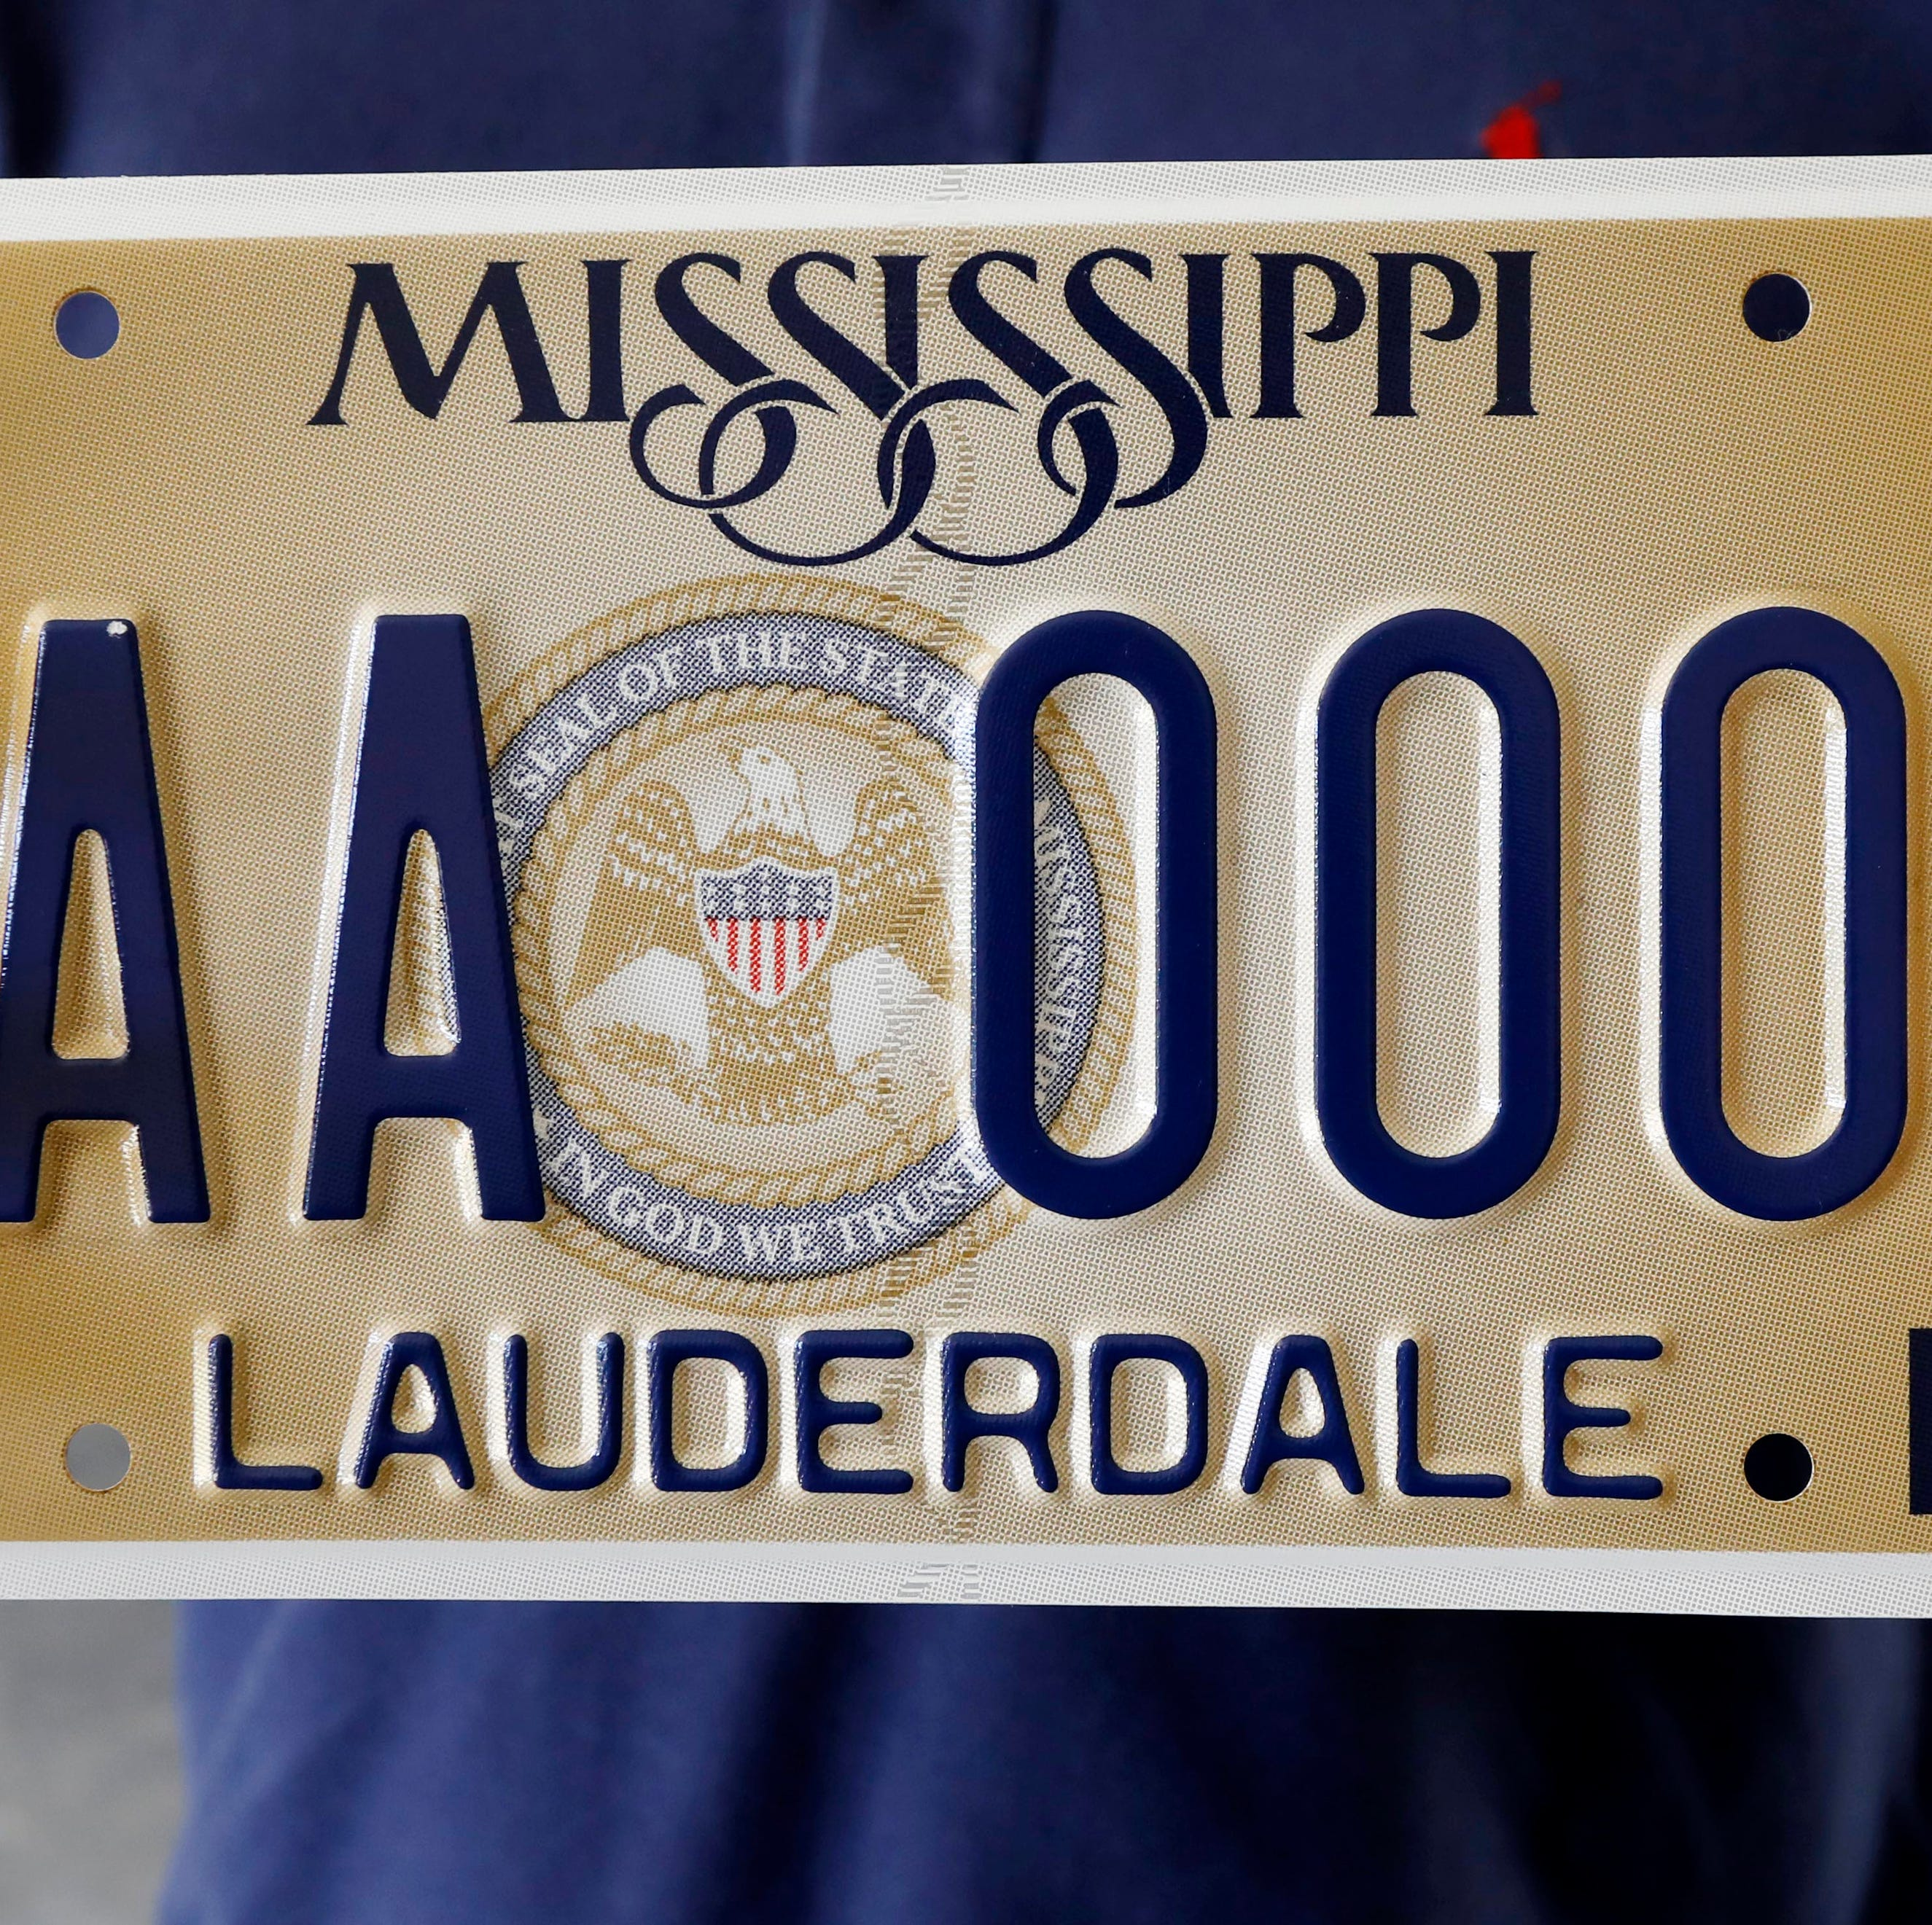 'In God We Trust': Humanist group objects to Mississippi license plate, threatens to sue